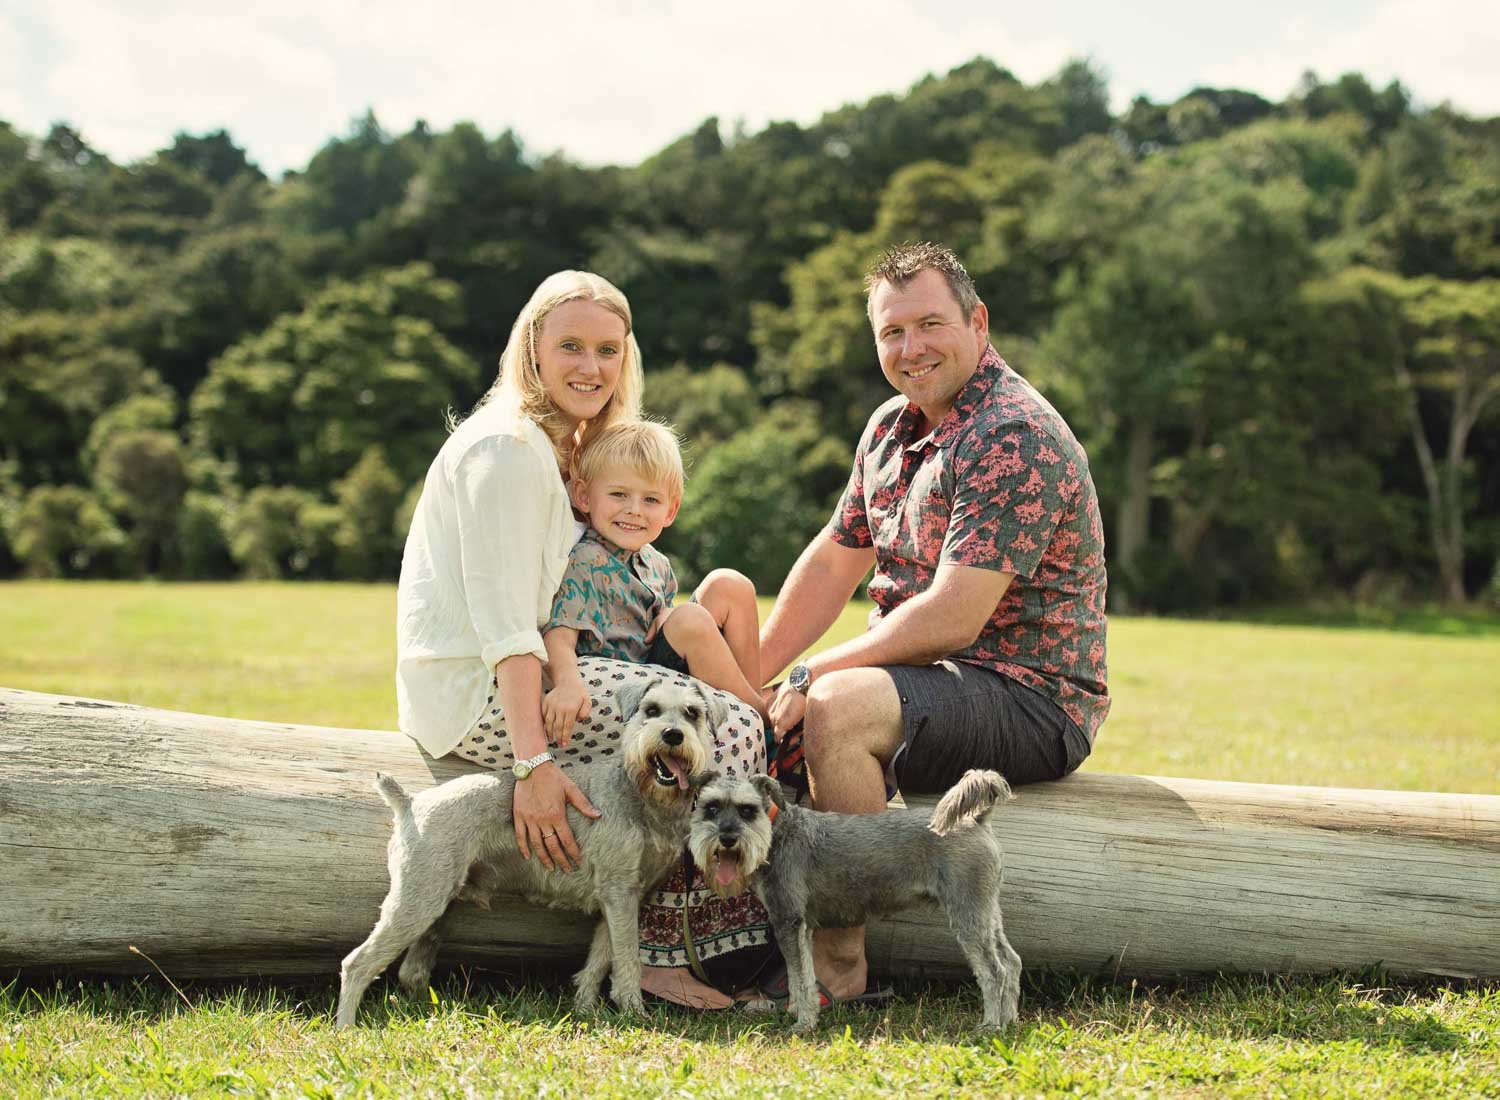 family photography in park by siobhan kelly photography